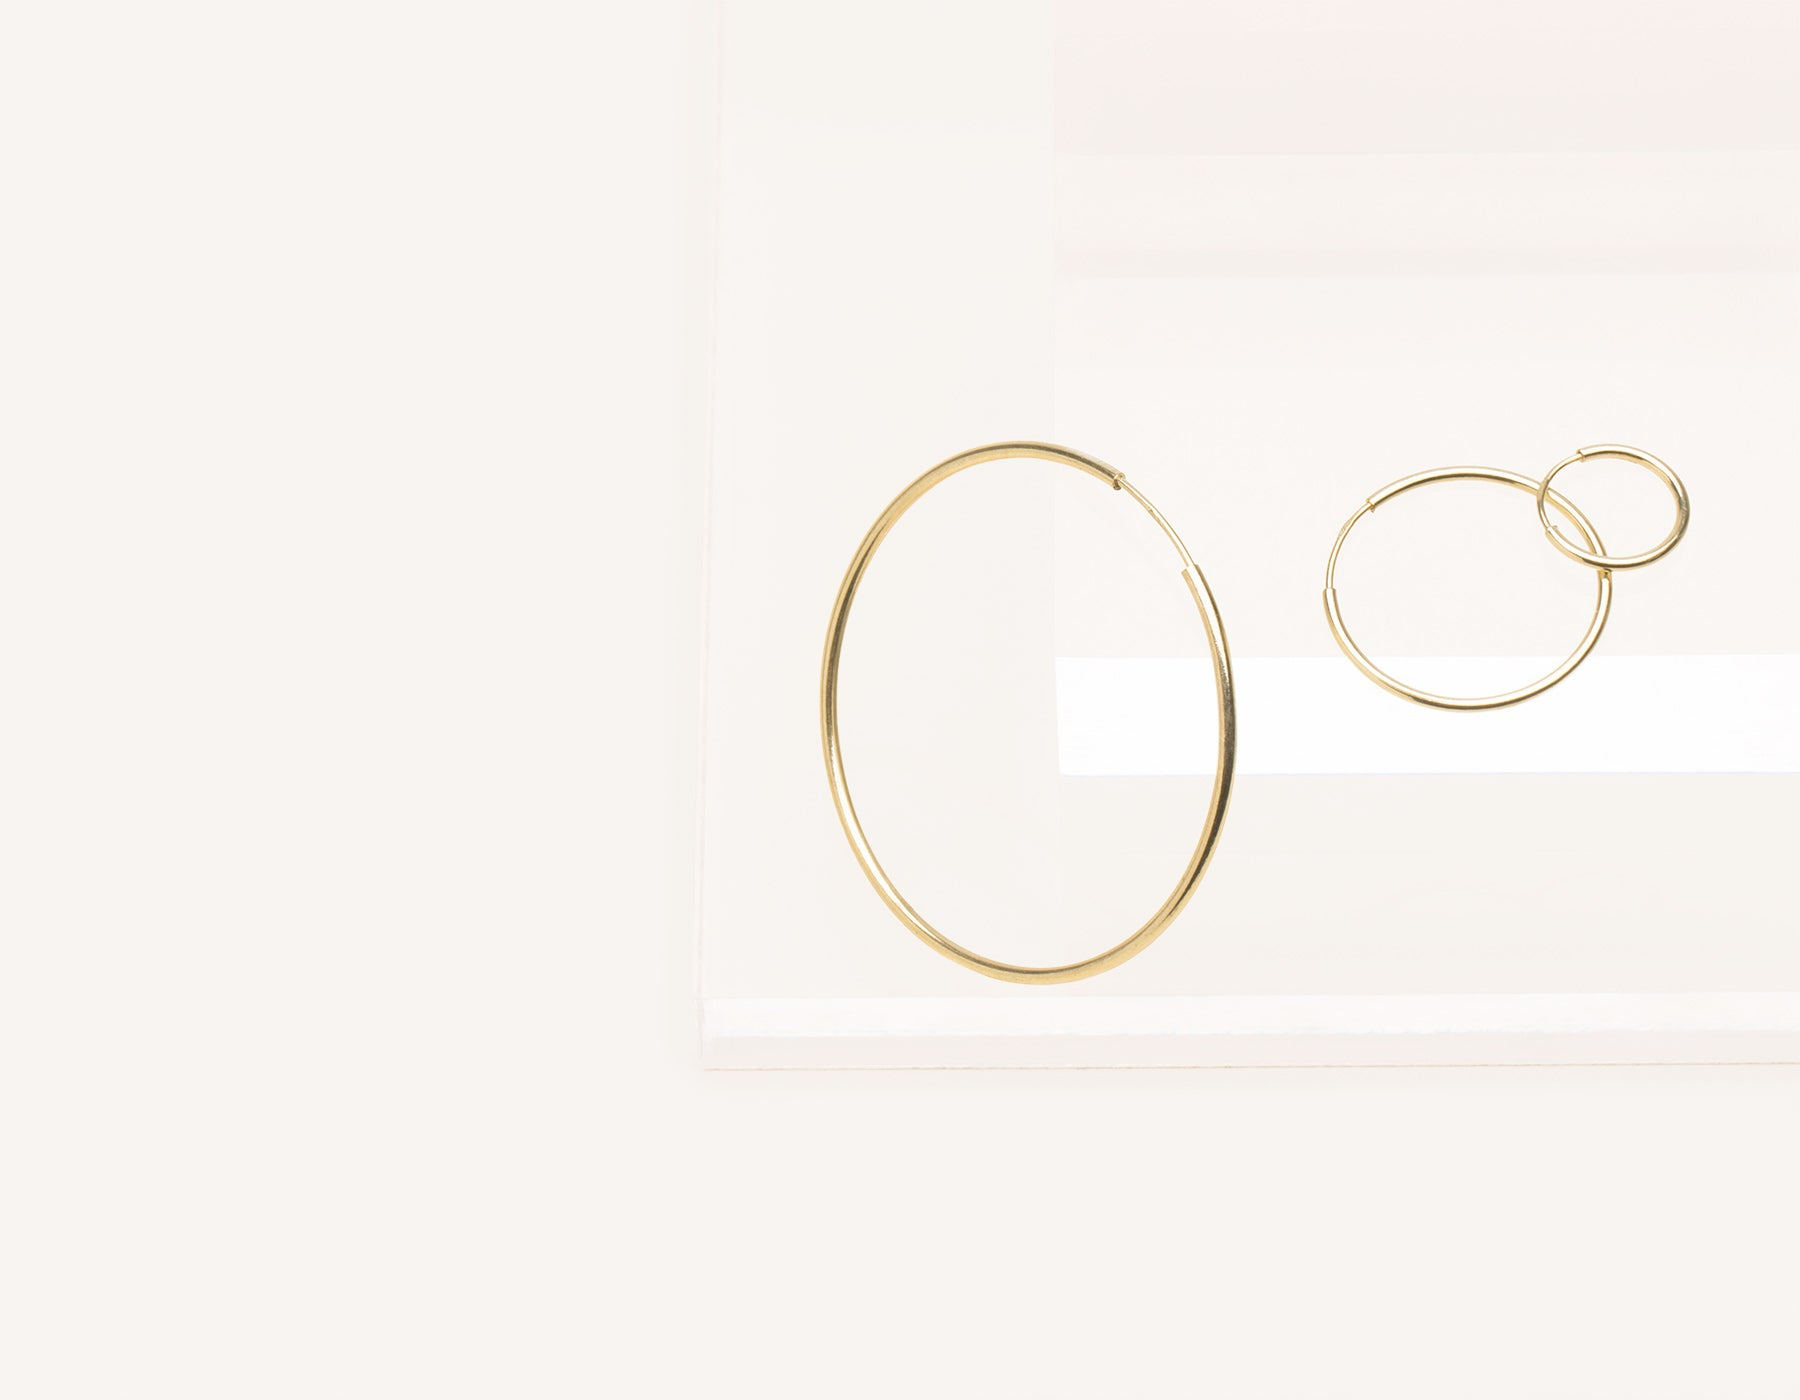 Simple classic thin Lightweight Hoops 14k solid gold Vrai and Oro minimalist jewelry, 14K Yellow Gold